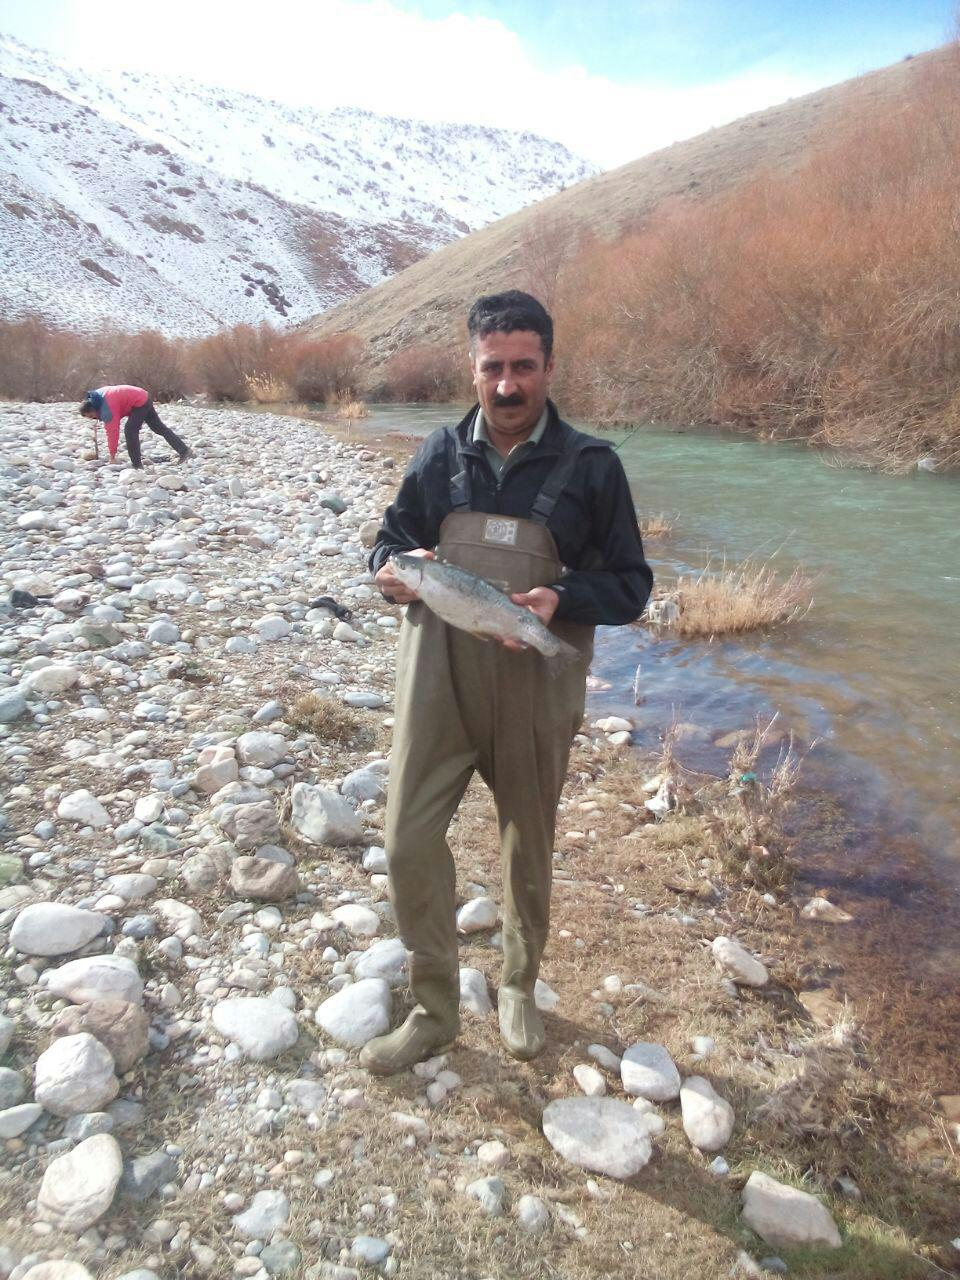 http://esfahanfishing.persiangig.com/user/photo_2016-01-09_13-42-09.jpg